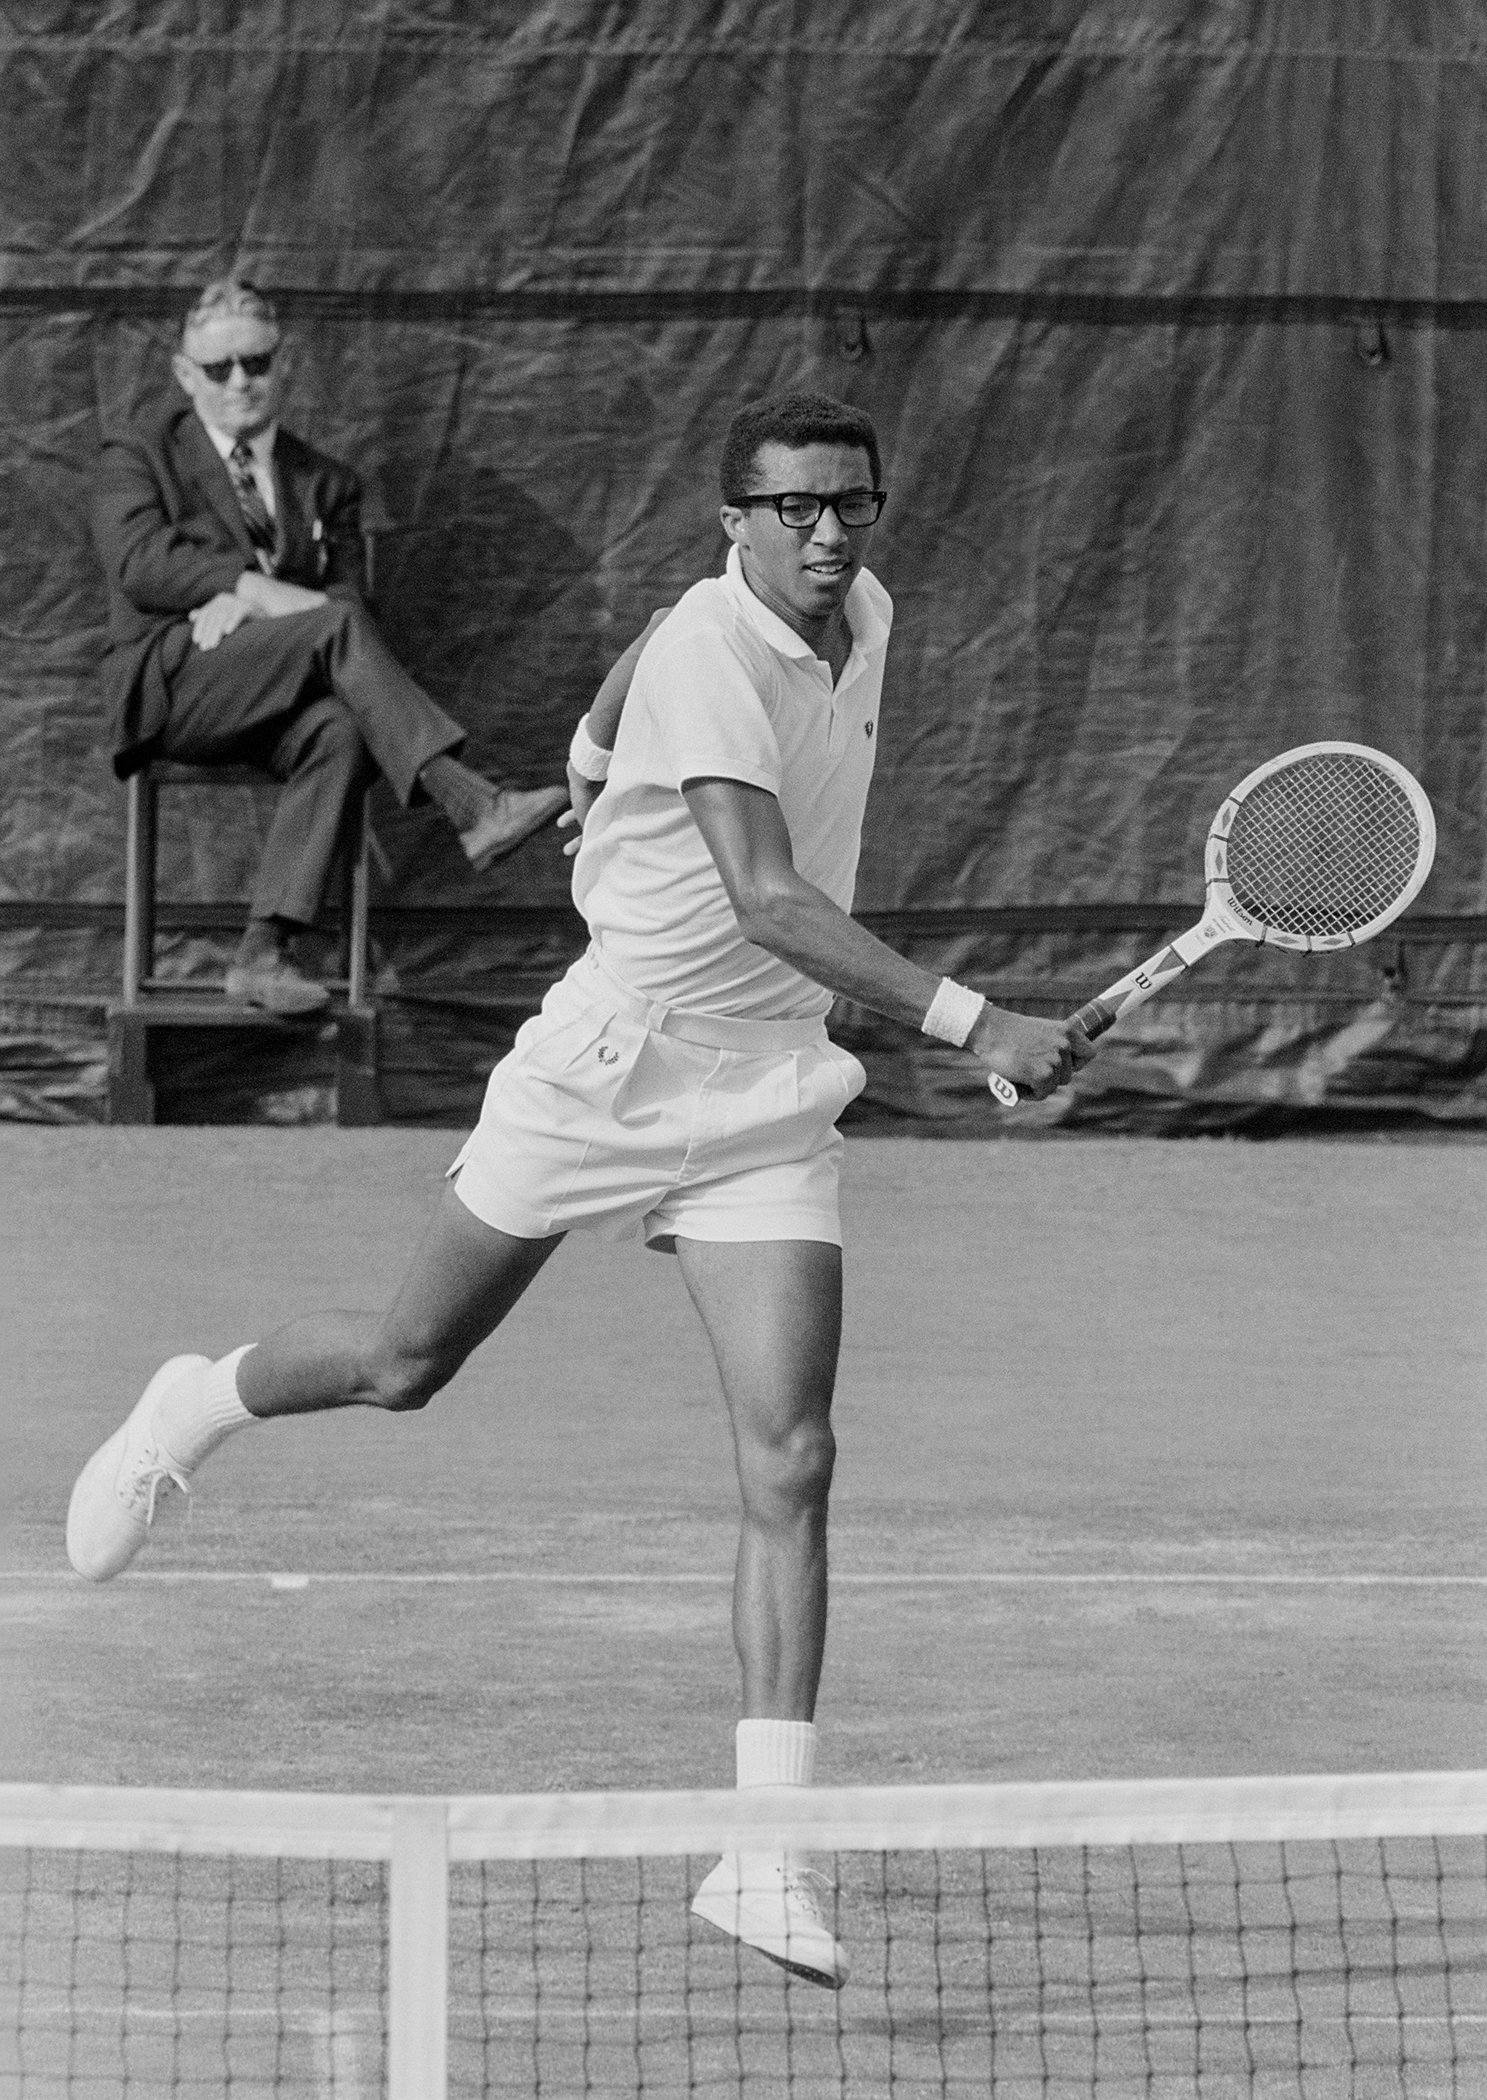 American tennis player Arthur Ashe (1943 - 1993) playing in the US Open final against Tom Okker of the Netherlands. West Side Tennis Club, Forest Hills, N.Y., Sept. 9, 1968. Photographer John G. Zimmerman